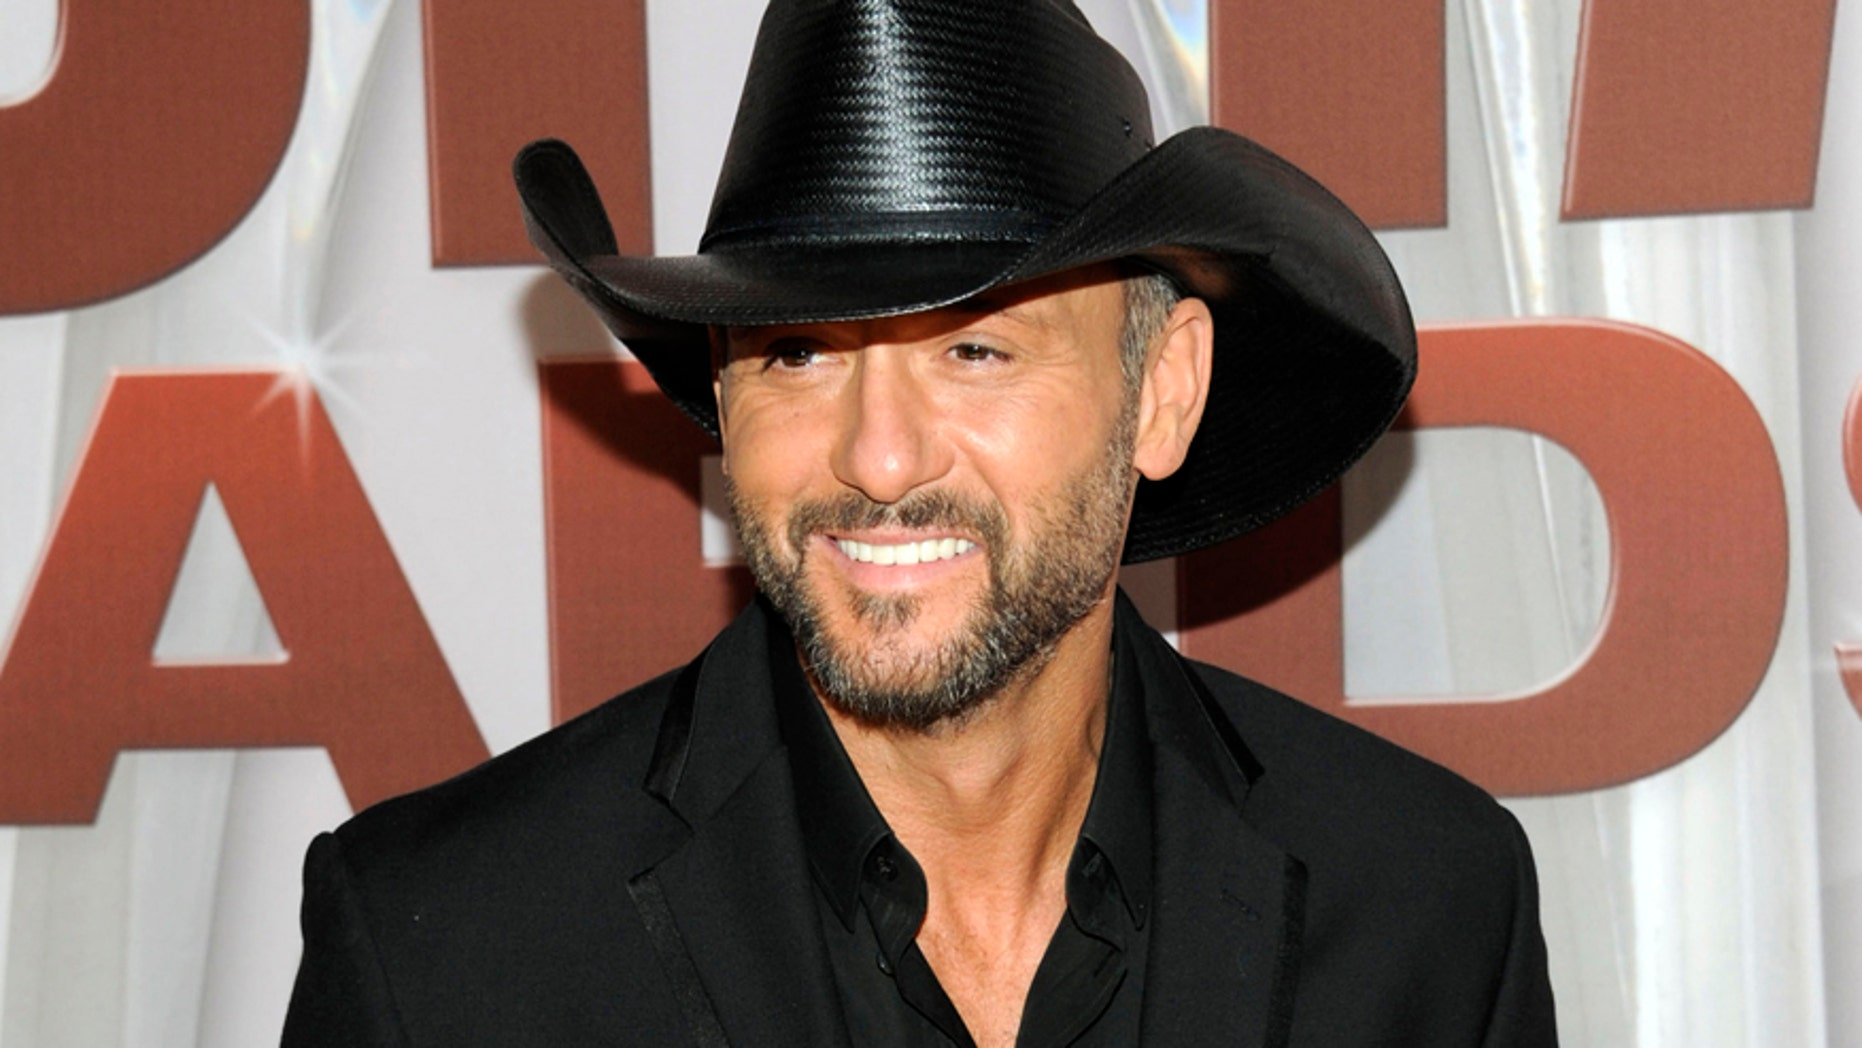 Tim Mcgraw Kid Rock Lincoln Continentals And Cadillacs